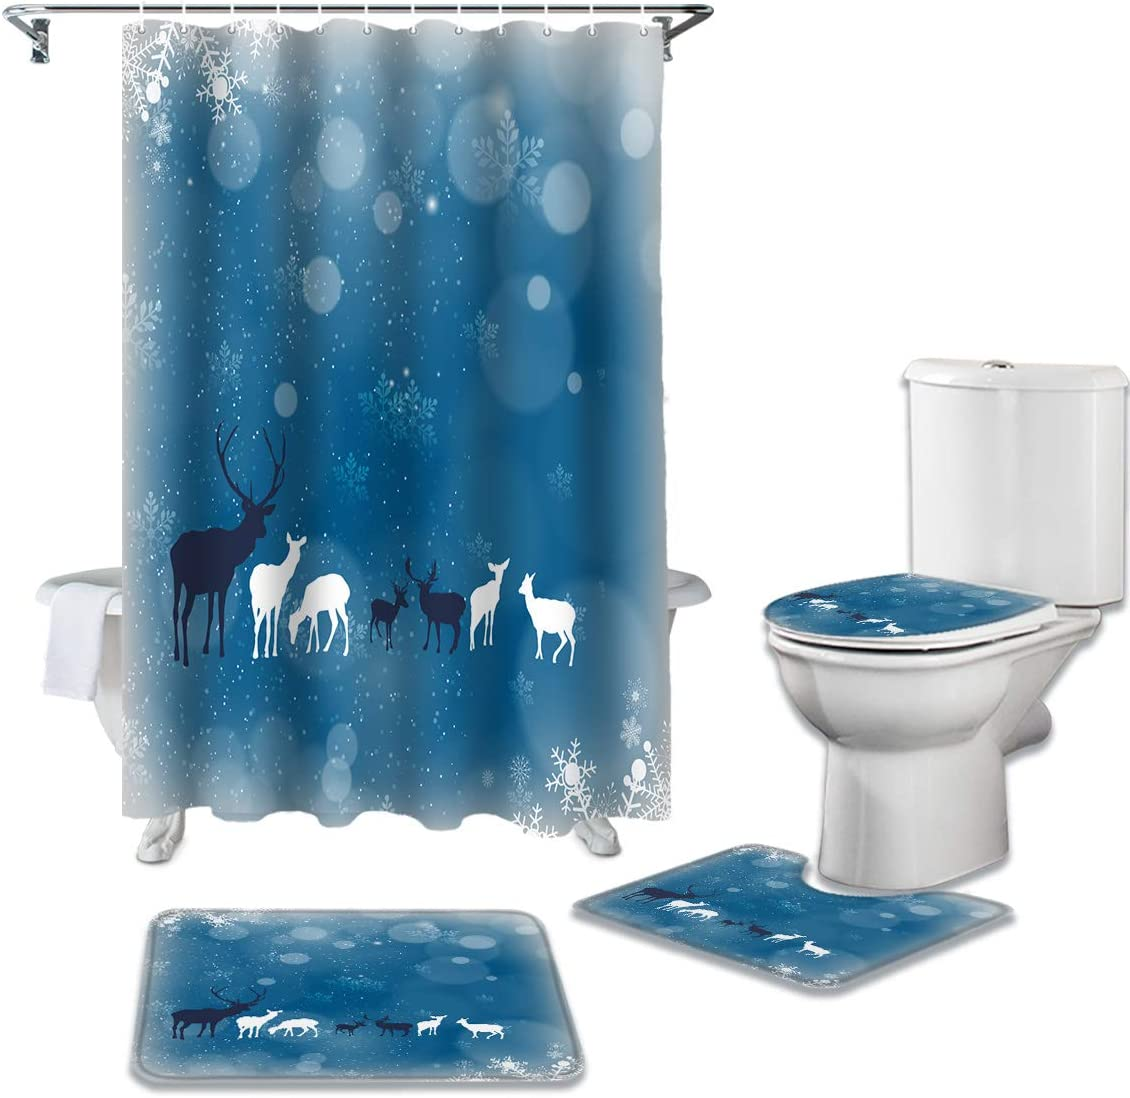 CHARMHOME 4 Piece free shipping Shower Curtain Non-Slip Sets Rug with New color Toilet